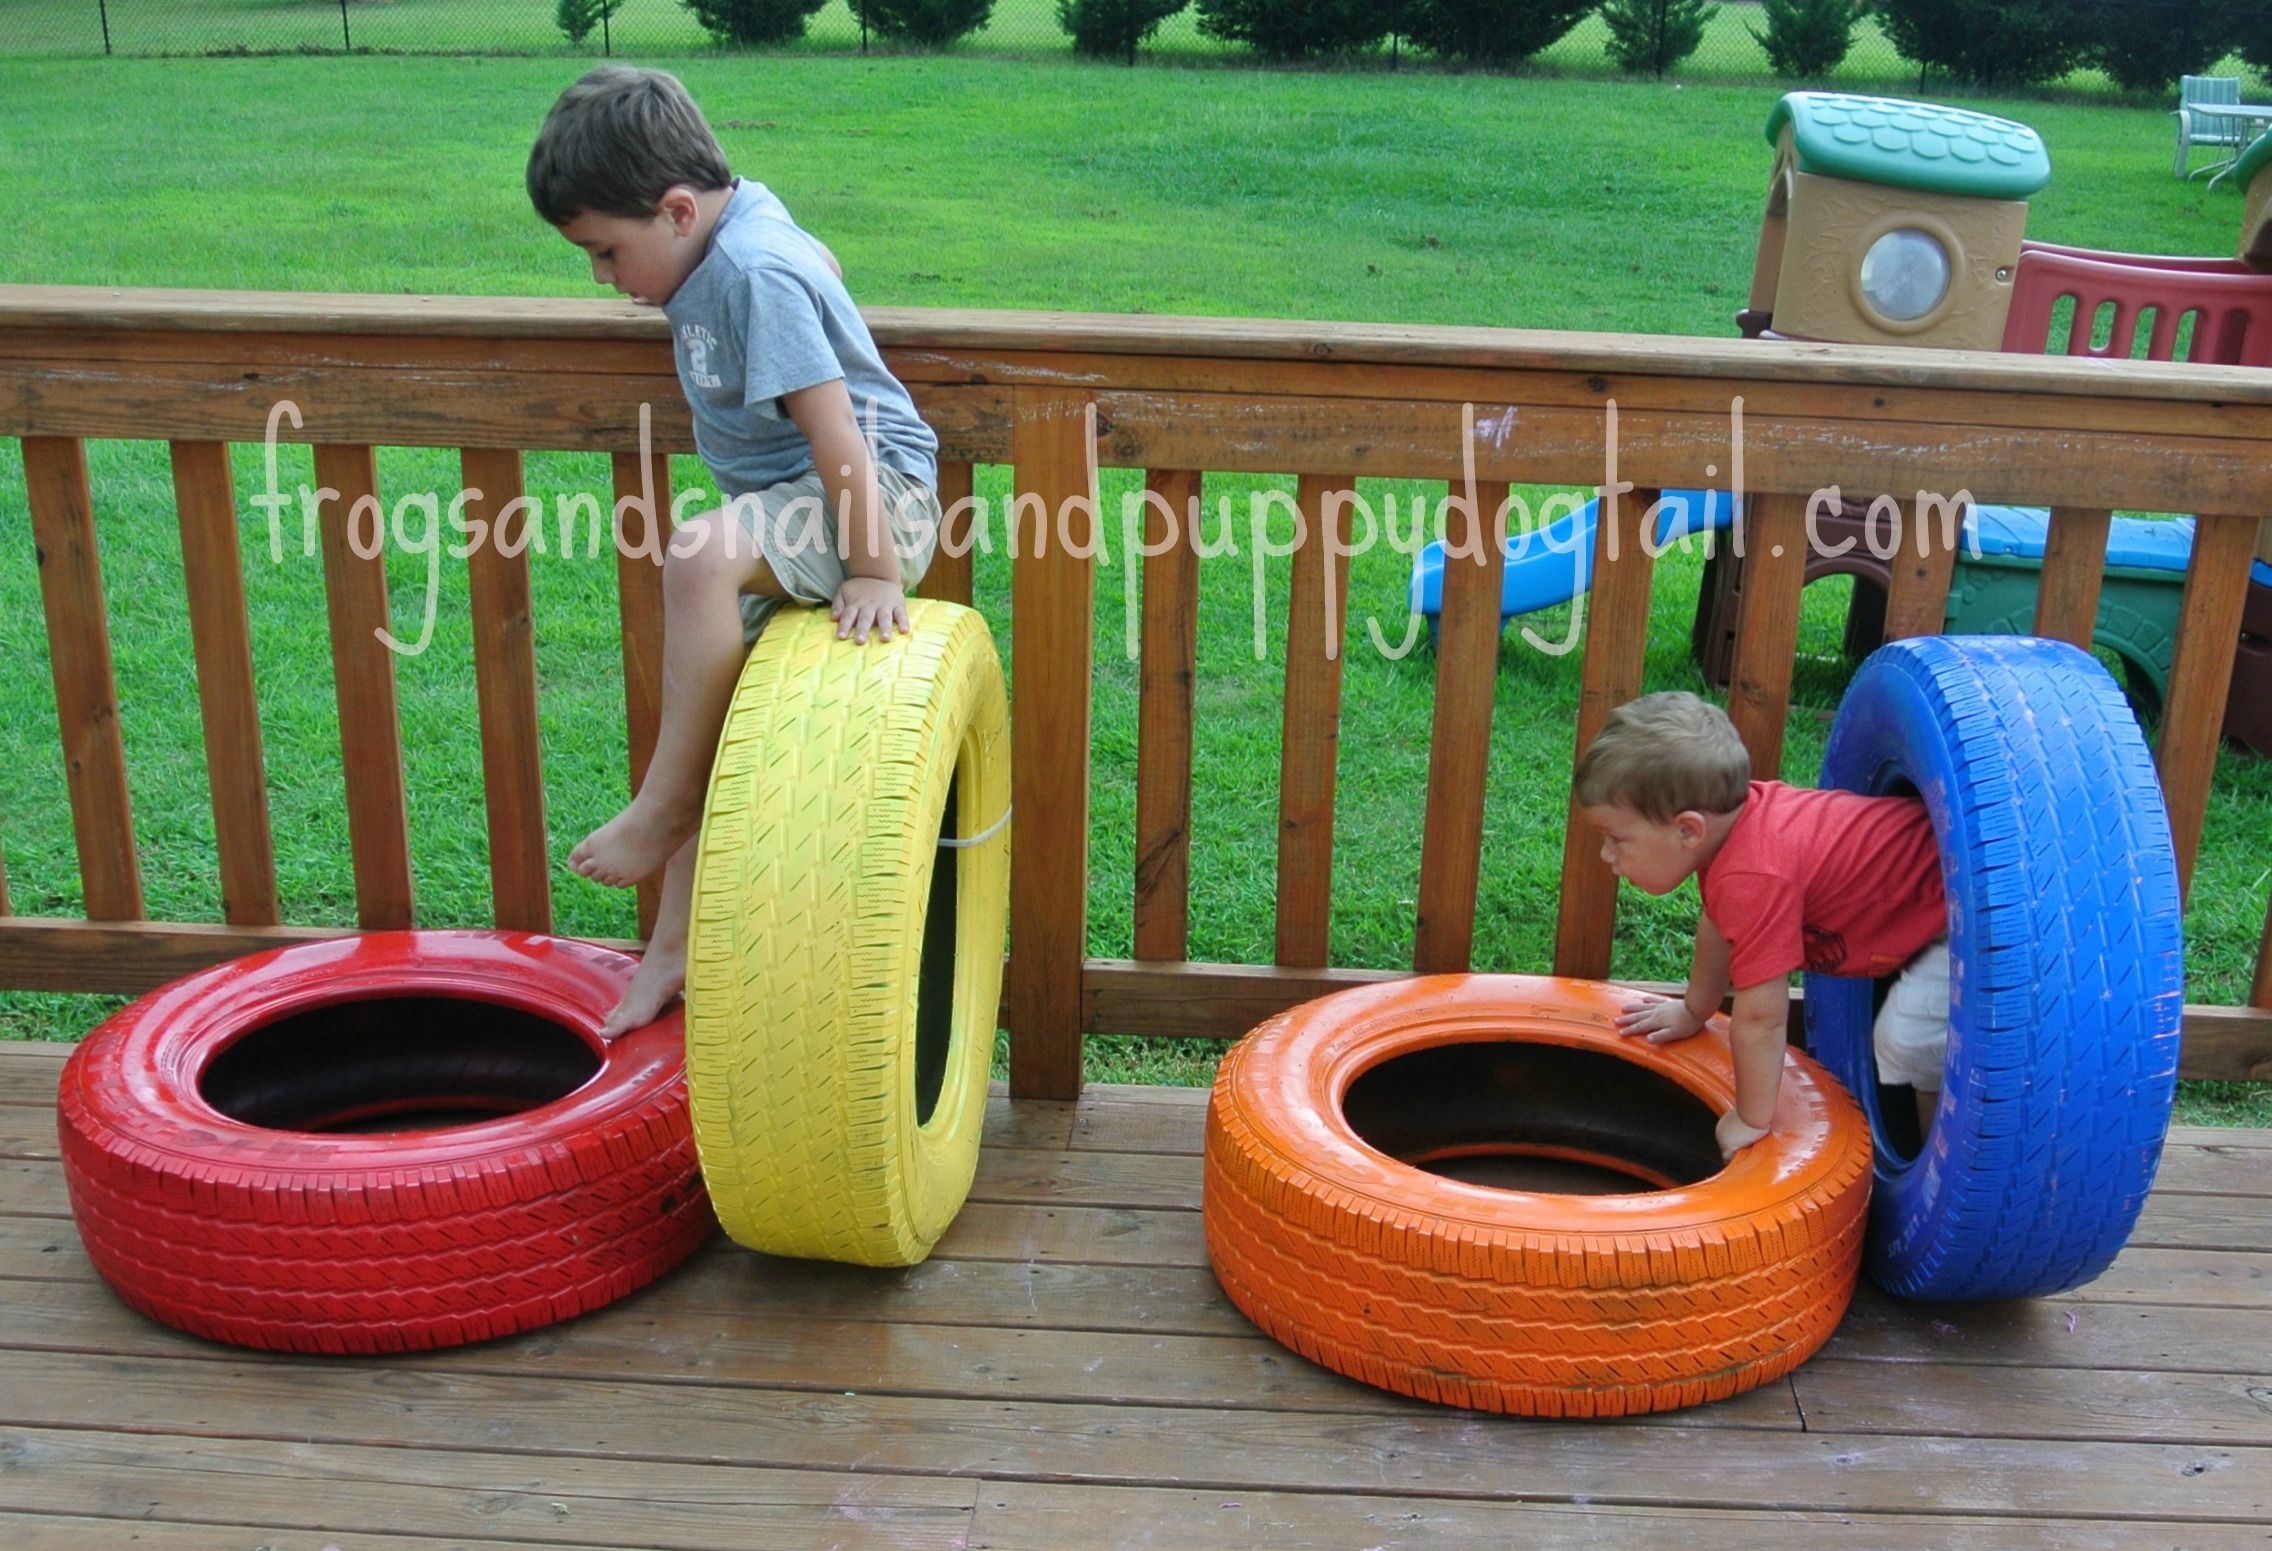 Diy tire obstacle course from frogs and snails and puppy